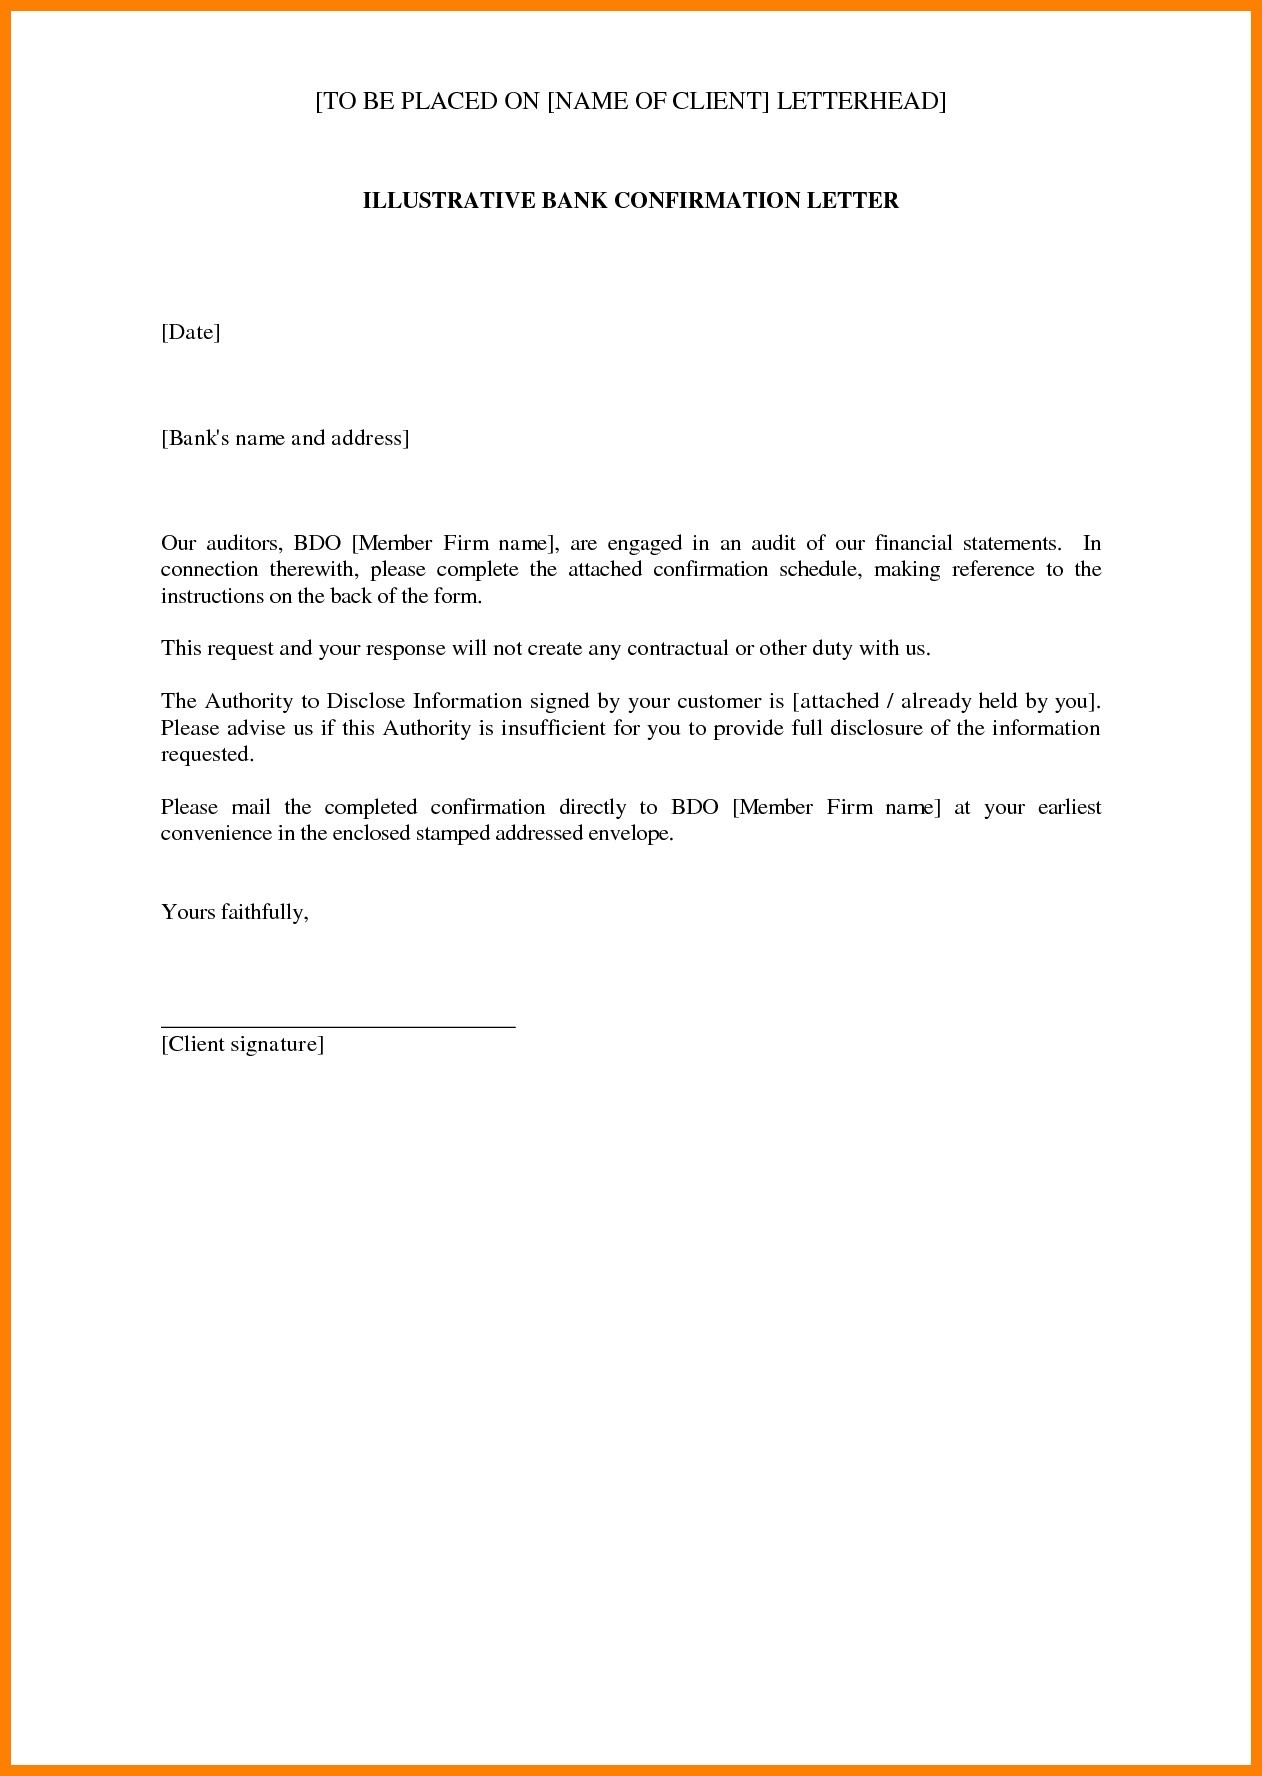 Audit Confirmation Letter Template - Sample Confirmation New Sample Audit Letter In Bank New Bank